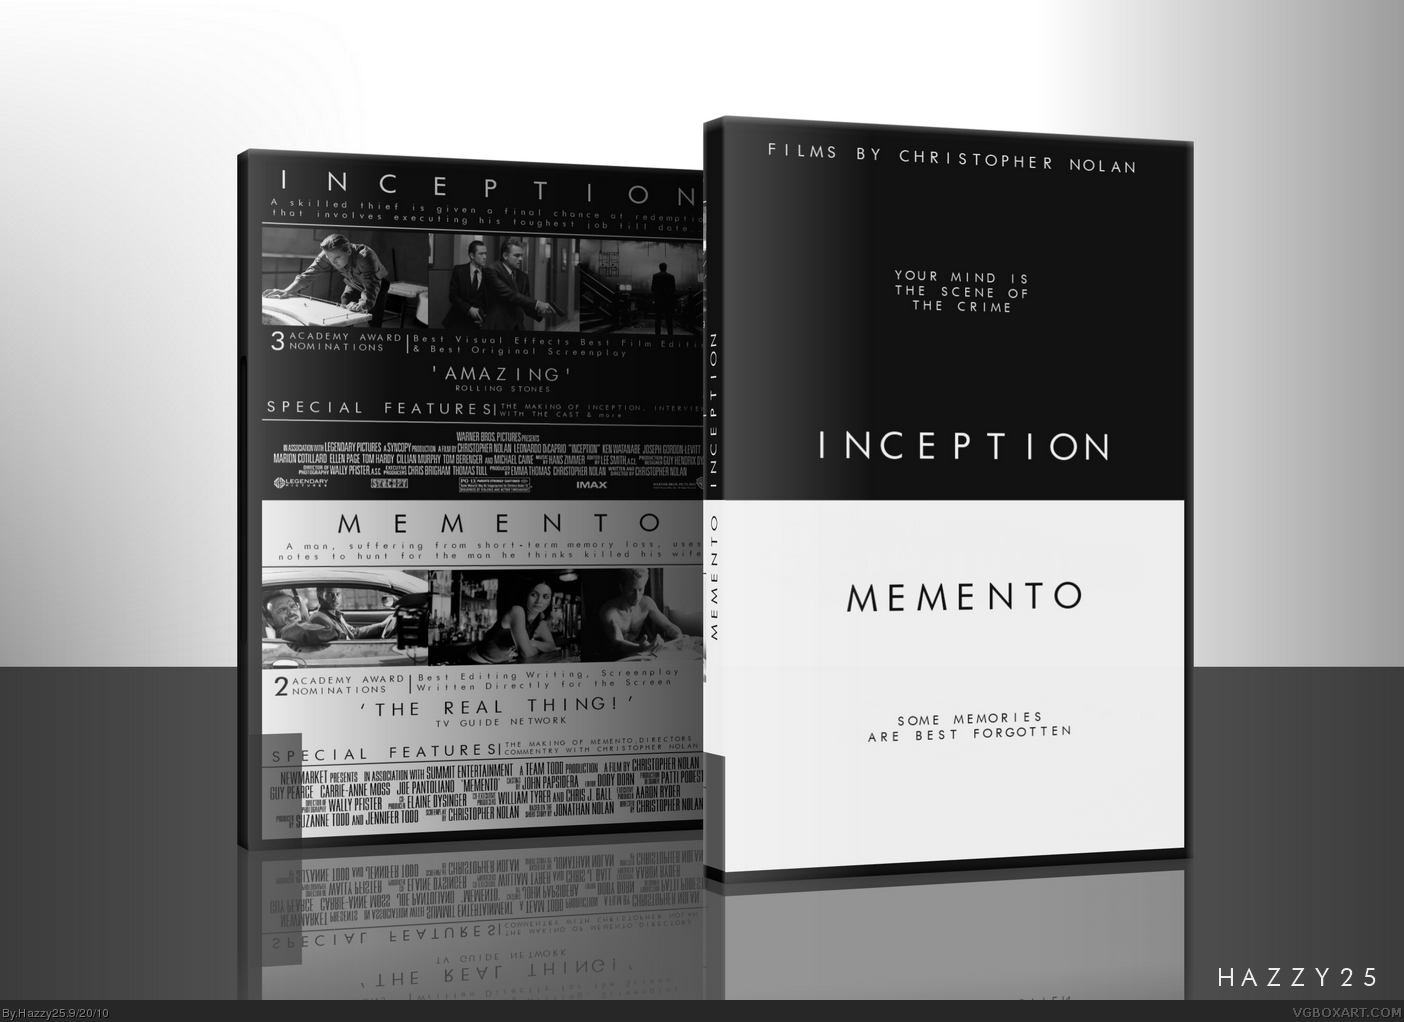 Inception Memento Double Pack Dvd Movies Box Art Cover